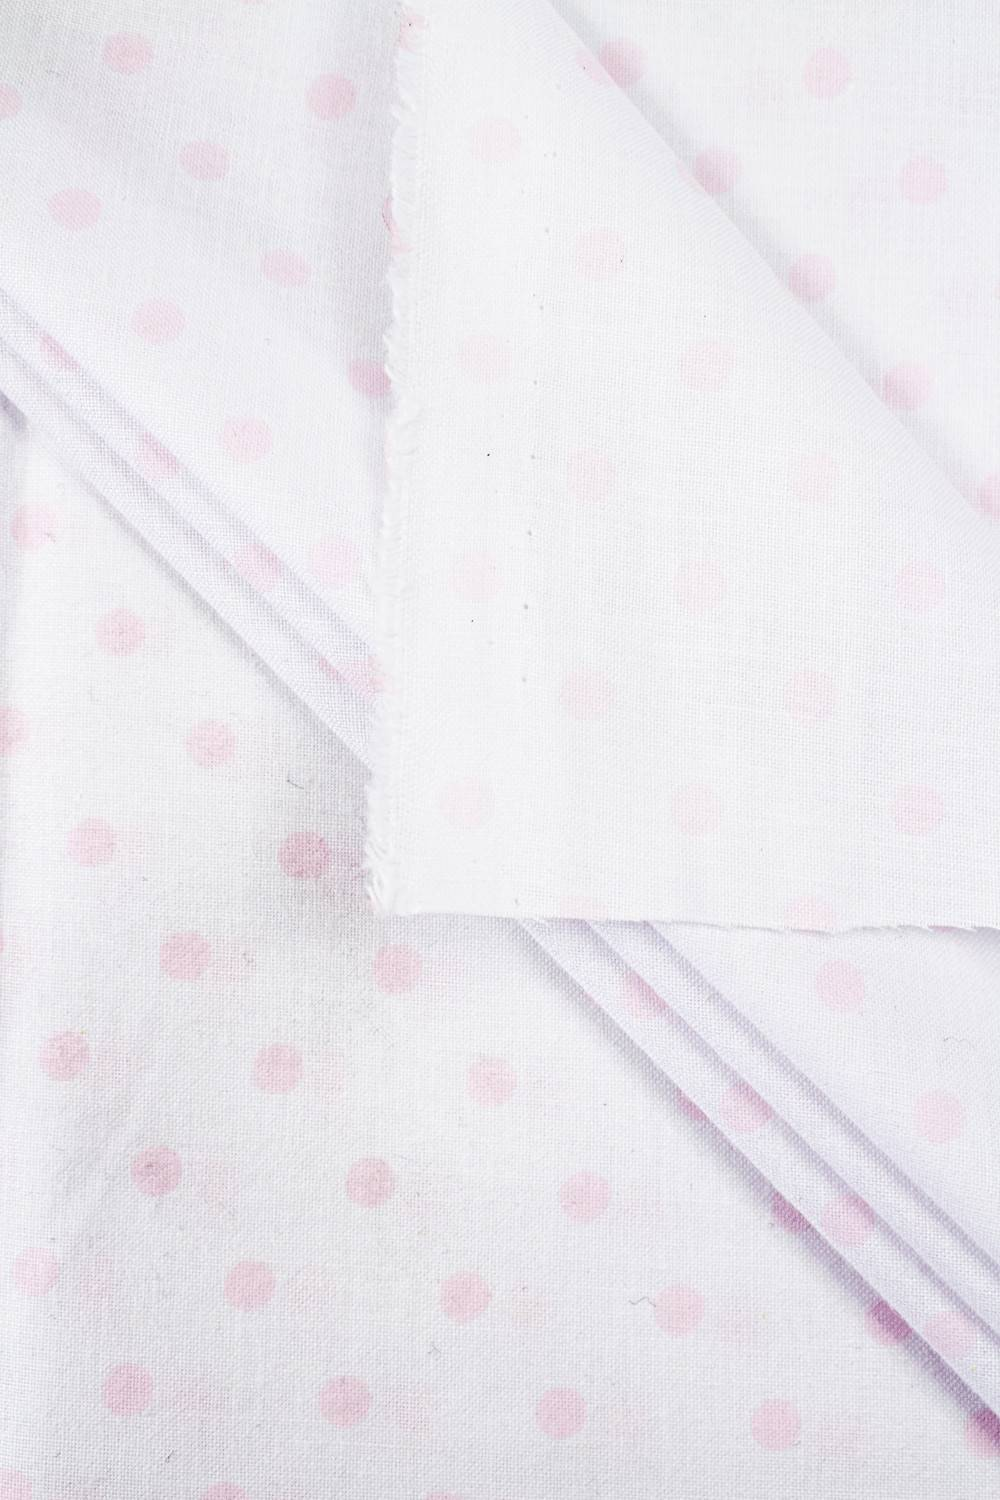 Fabric - Cotton - White With Pink Dots - 165 cm - 115 g/m2